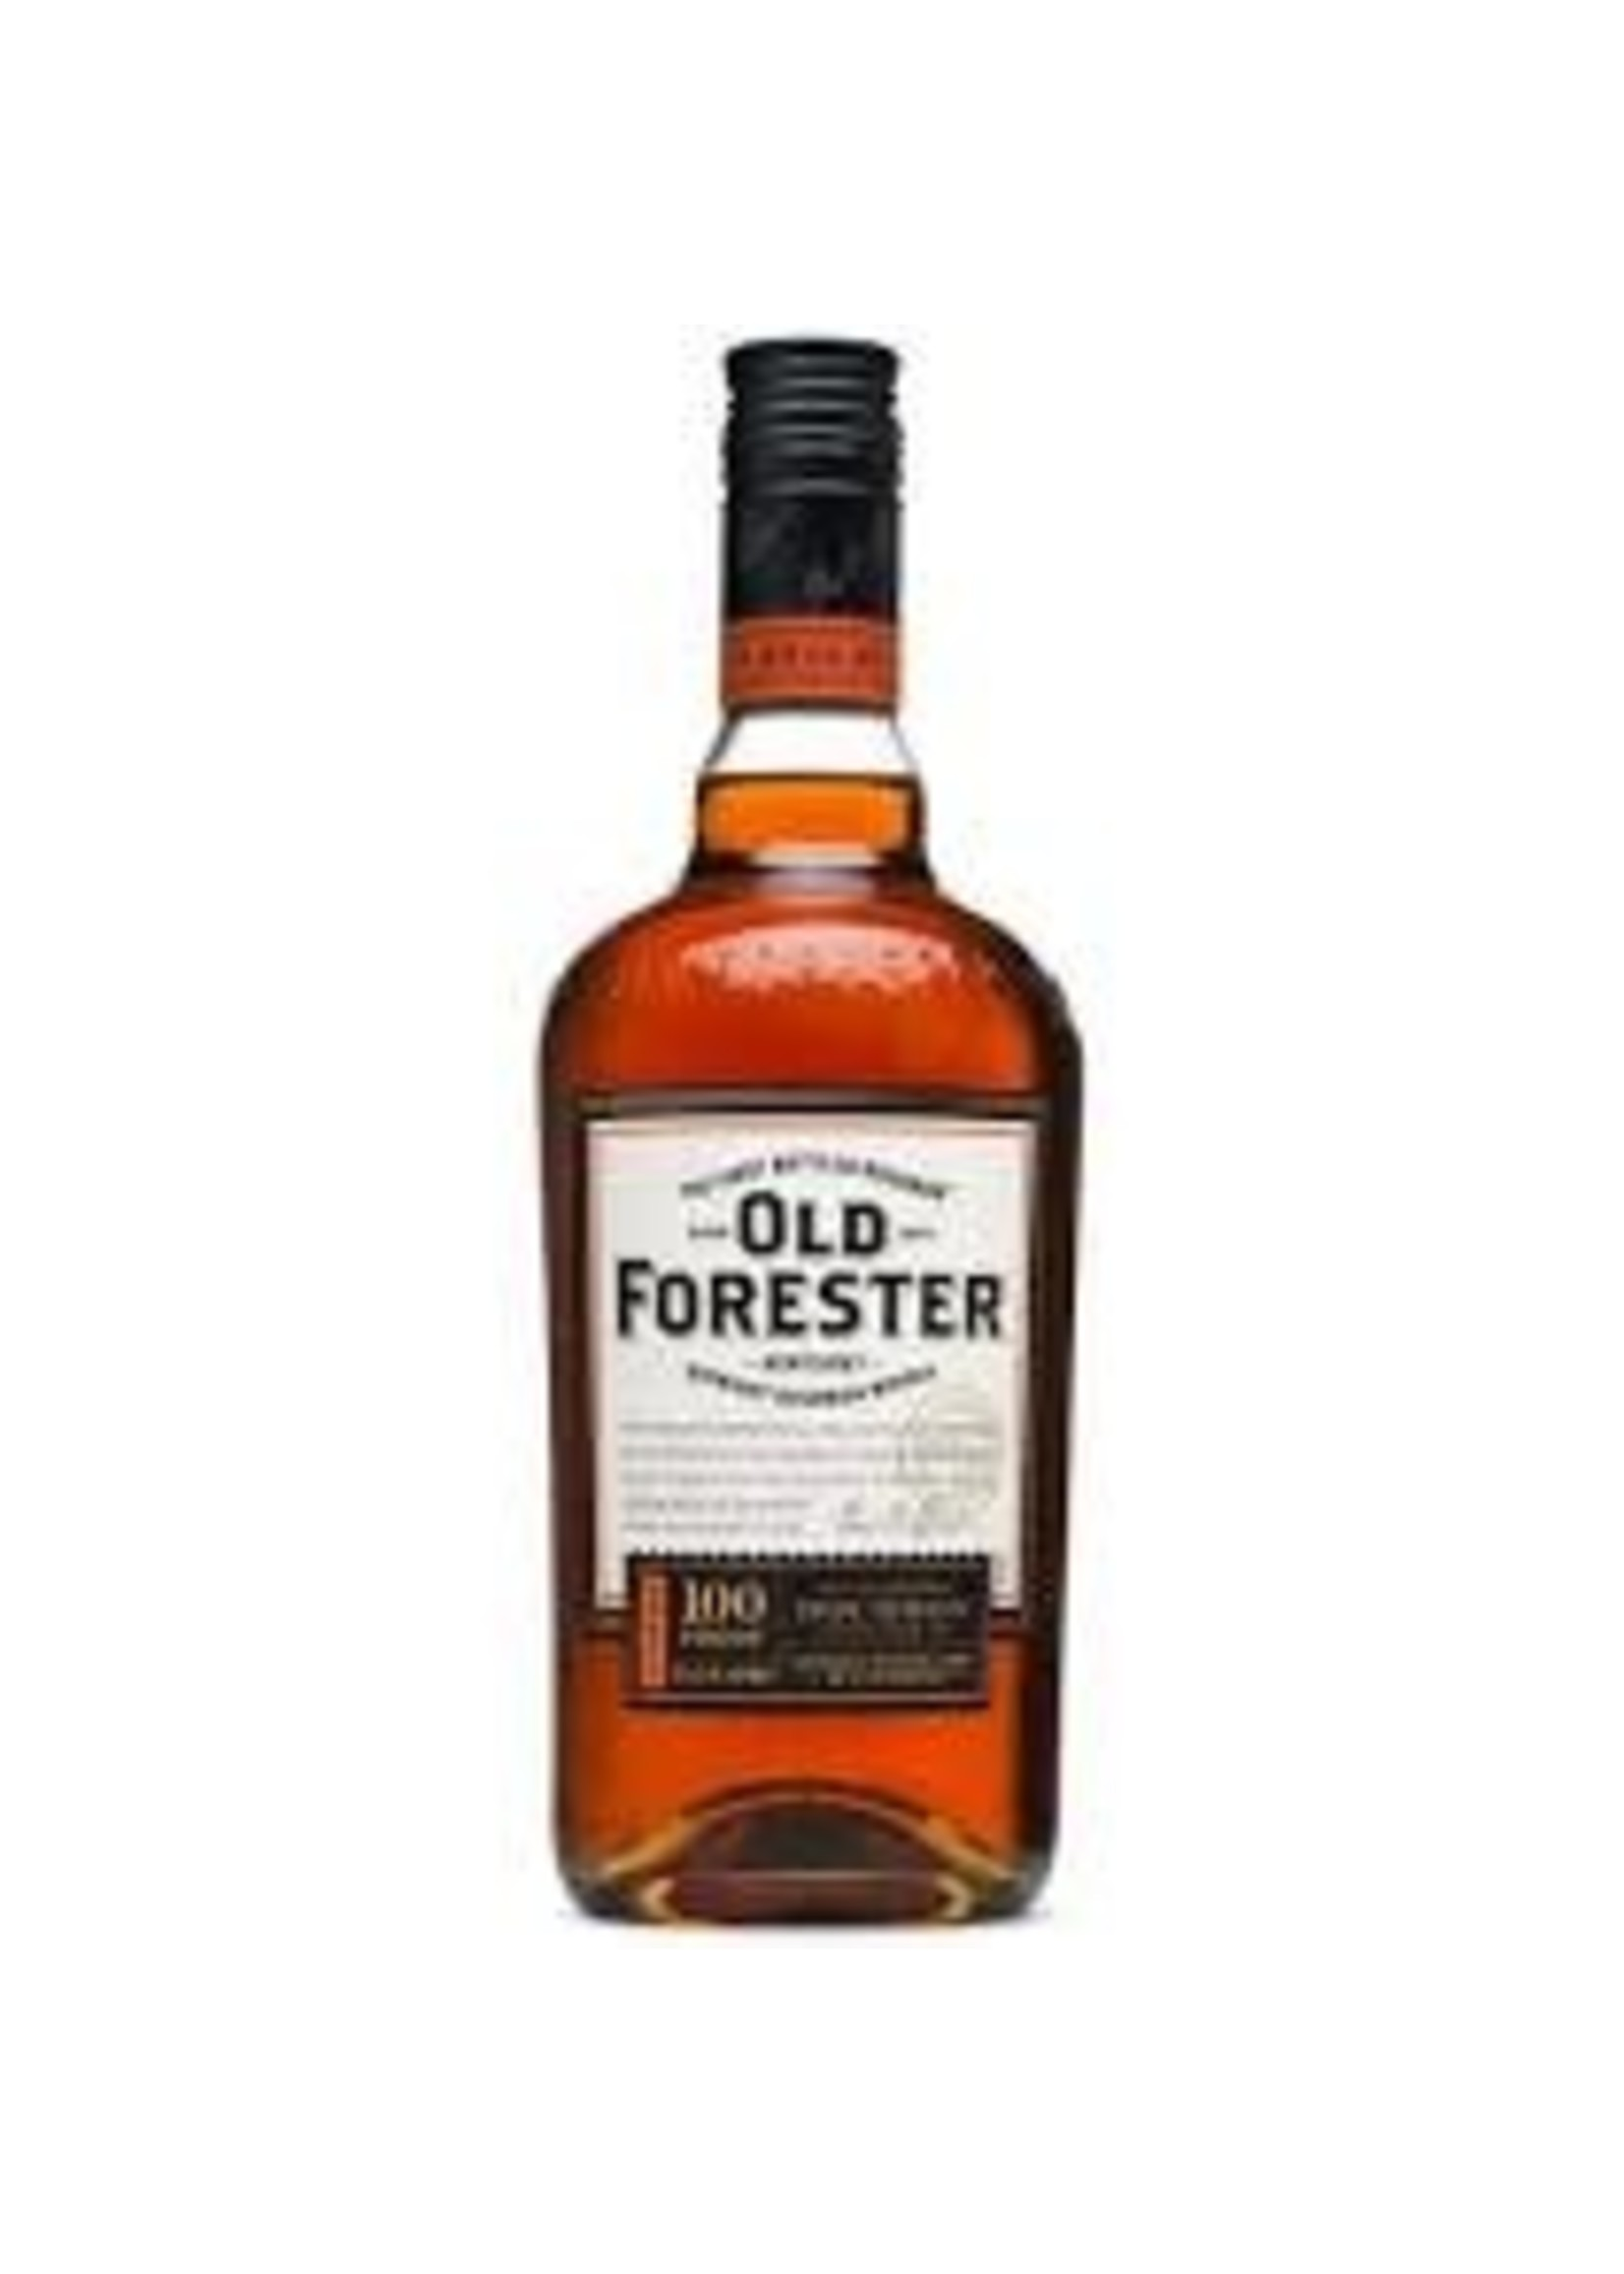 Old Forester Bourbon 100 PF Signature 750ml